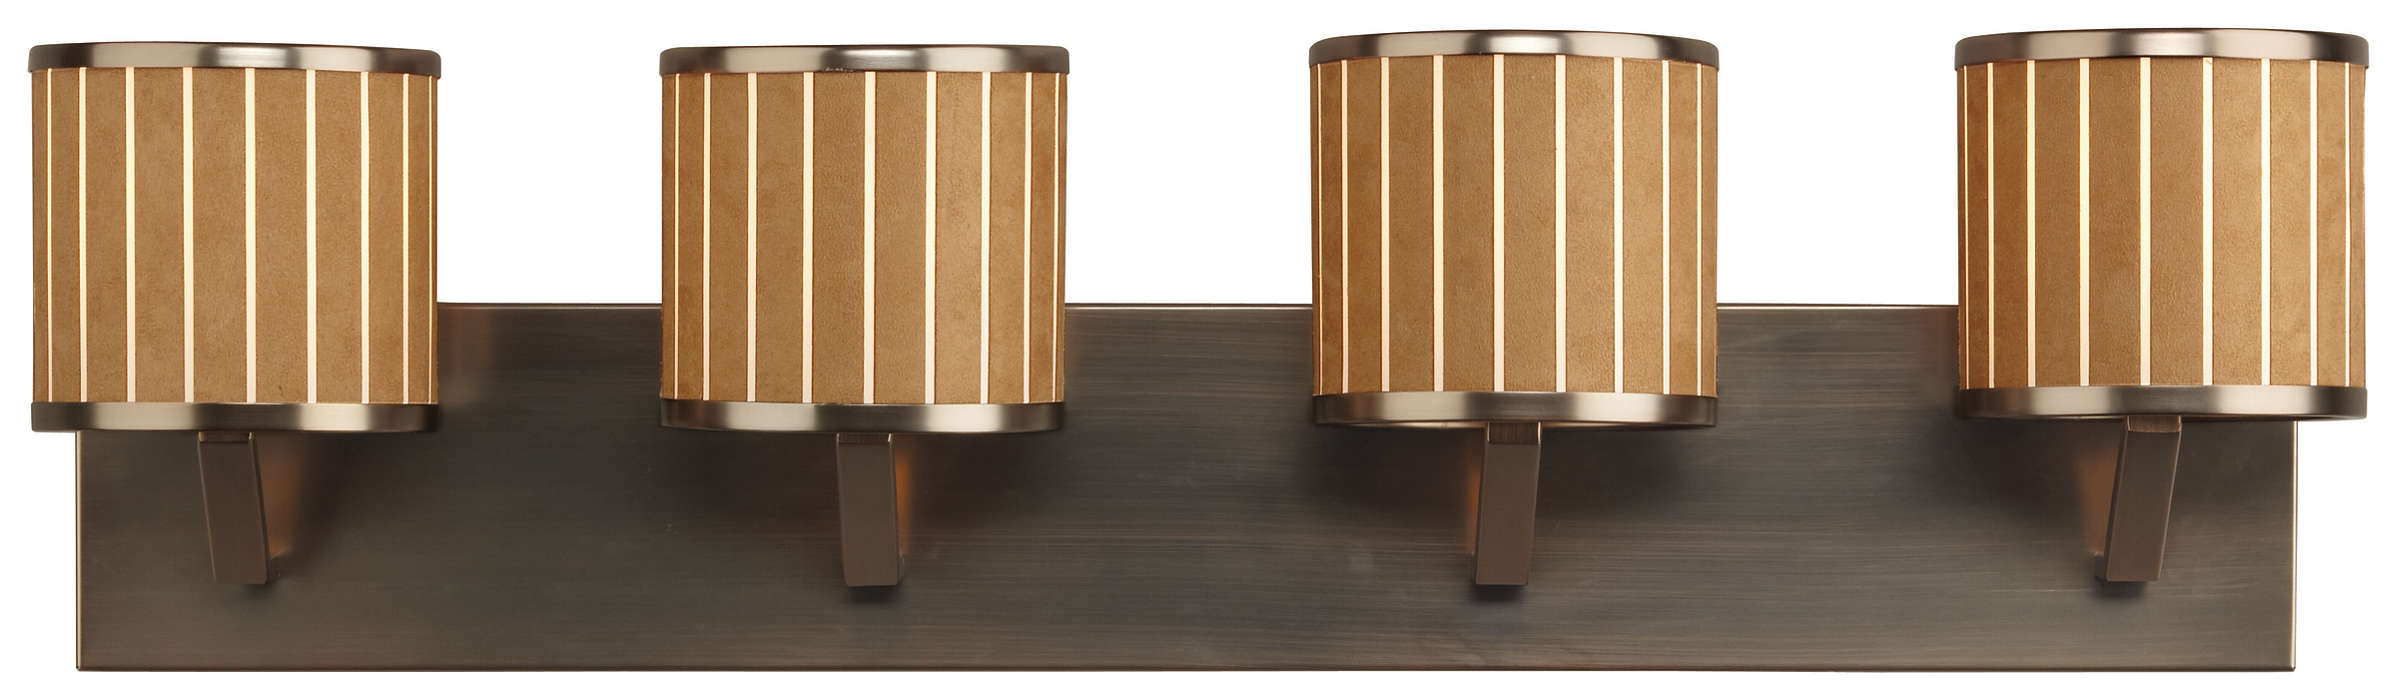 Haberdasher 4-light Bath in Oiled Bronze finish